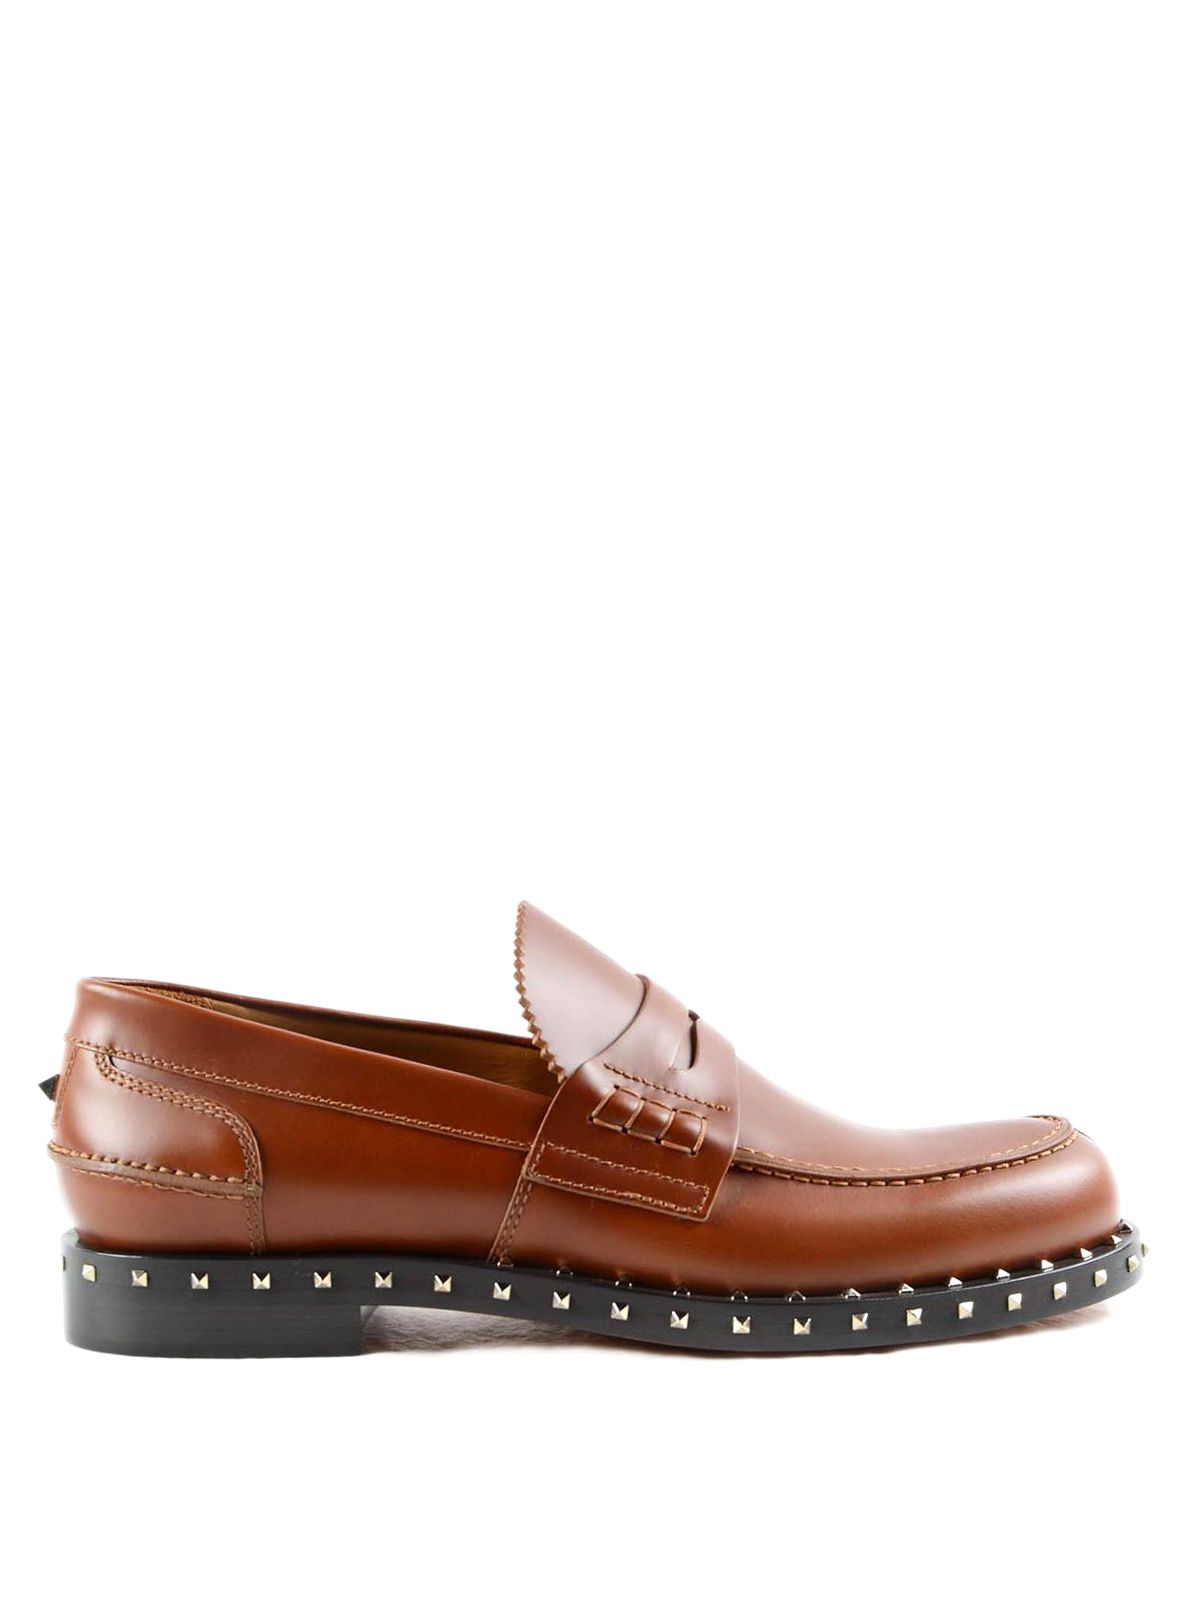 258dce4572942 Valentino Garavani - Rockstud leather loafers - Loafers & Slippers ...